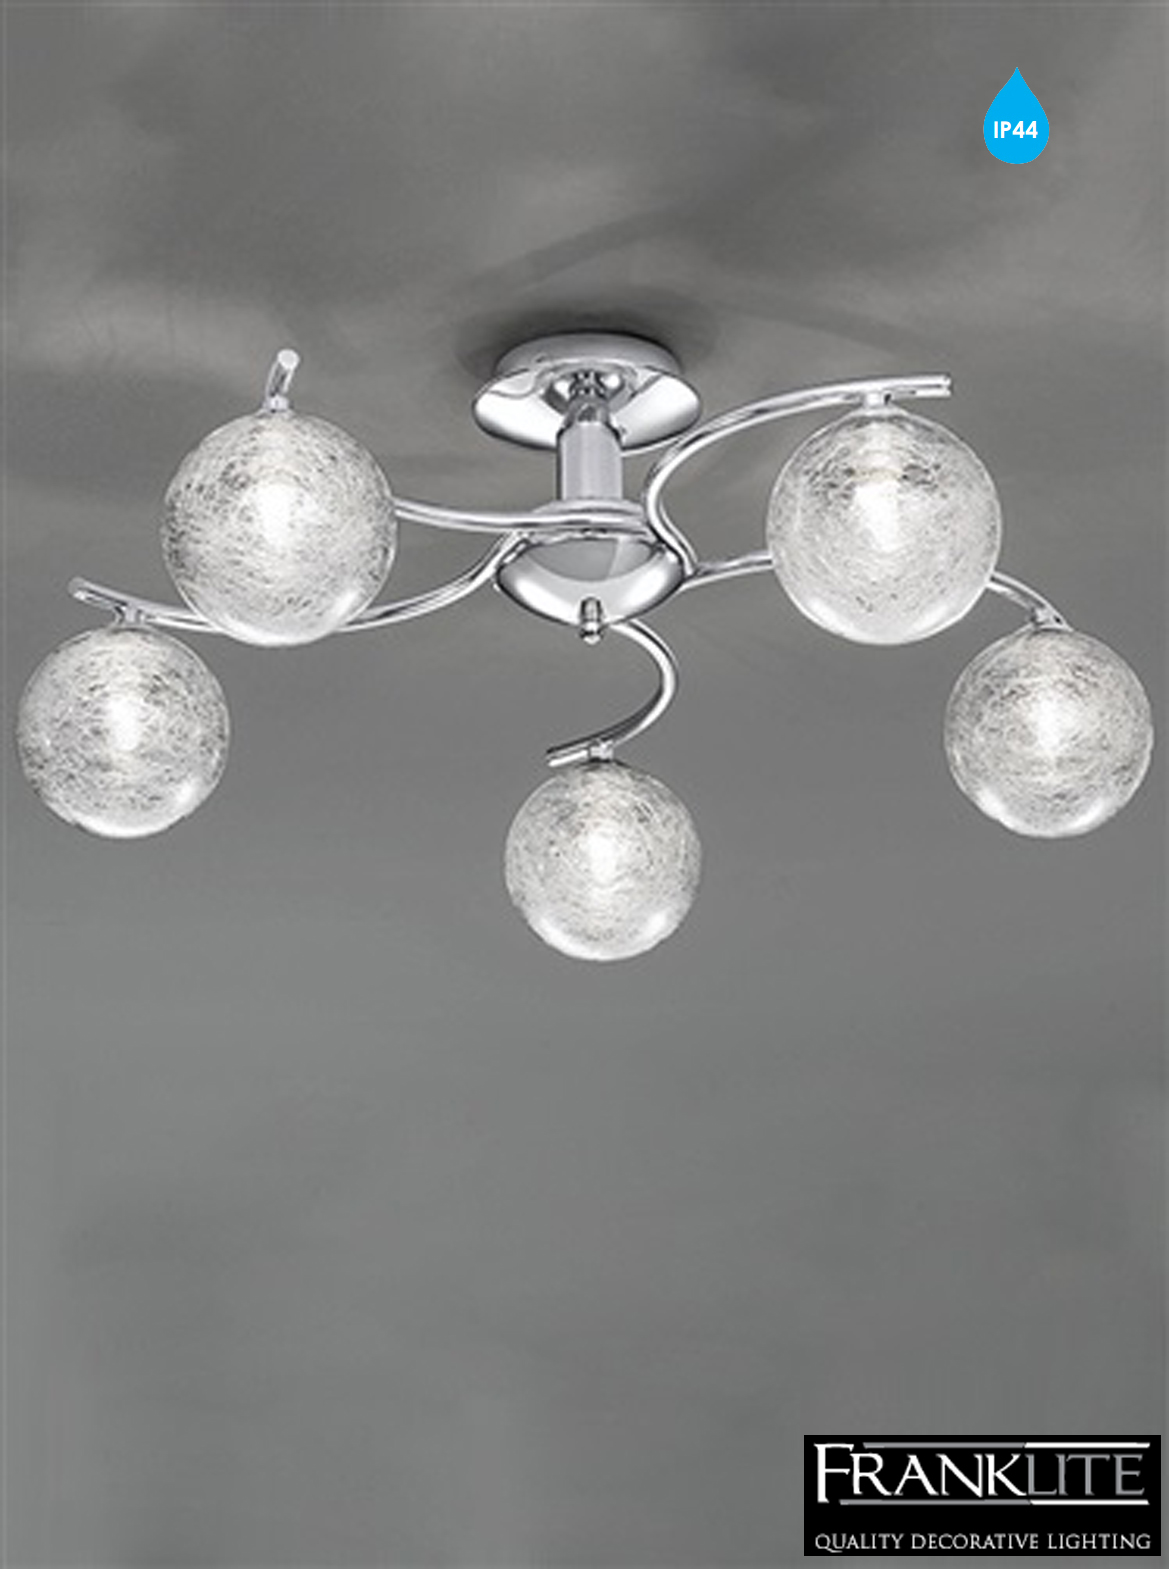 Bathroom Chandeliers Ip44 franklite glass & chrome 5 light ip44 bathroom ceiling fitting